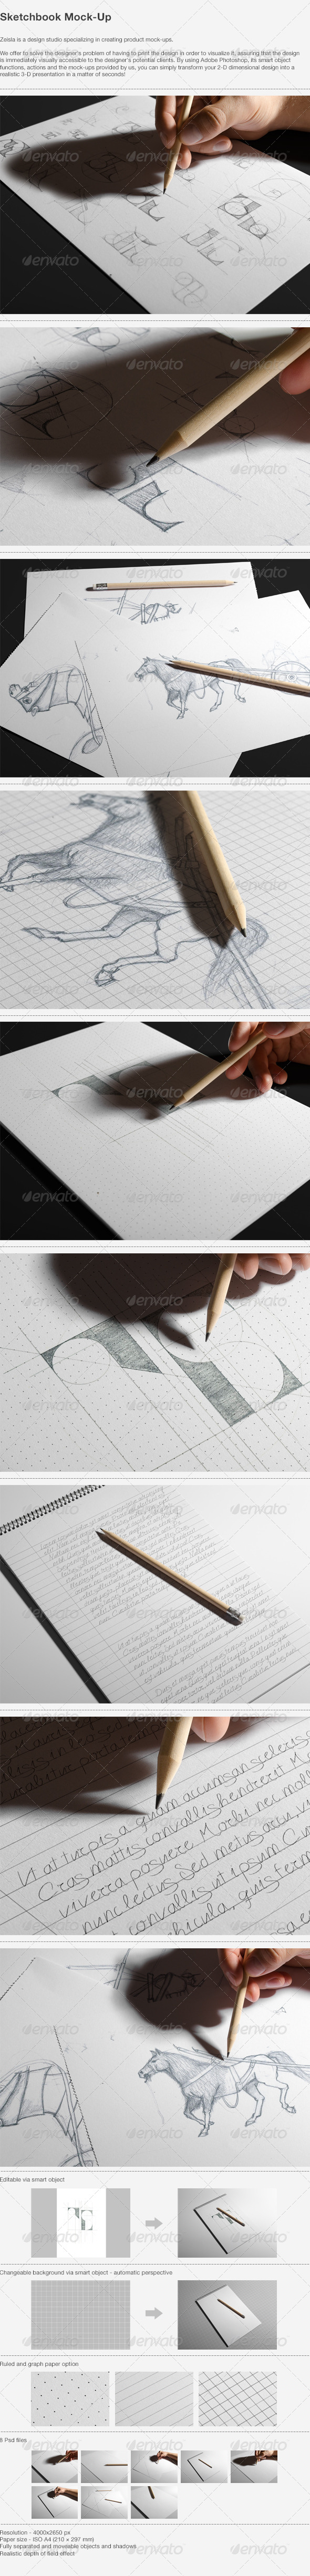 GraphicRiver Sketchbook Mock-Up 4972644